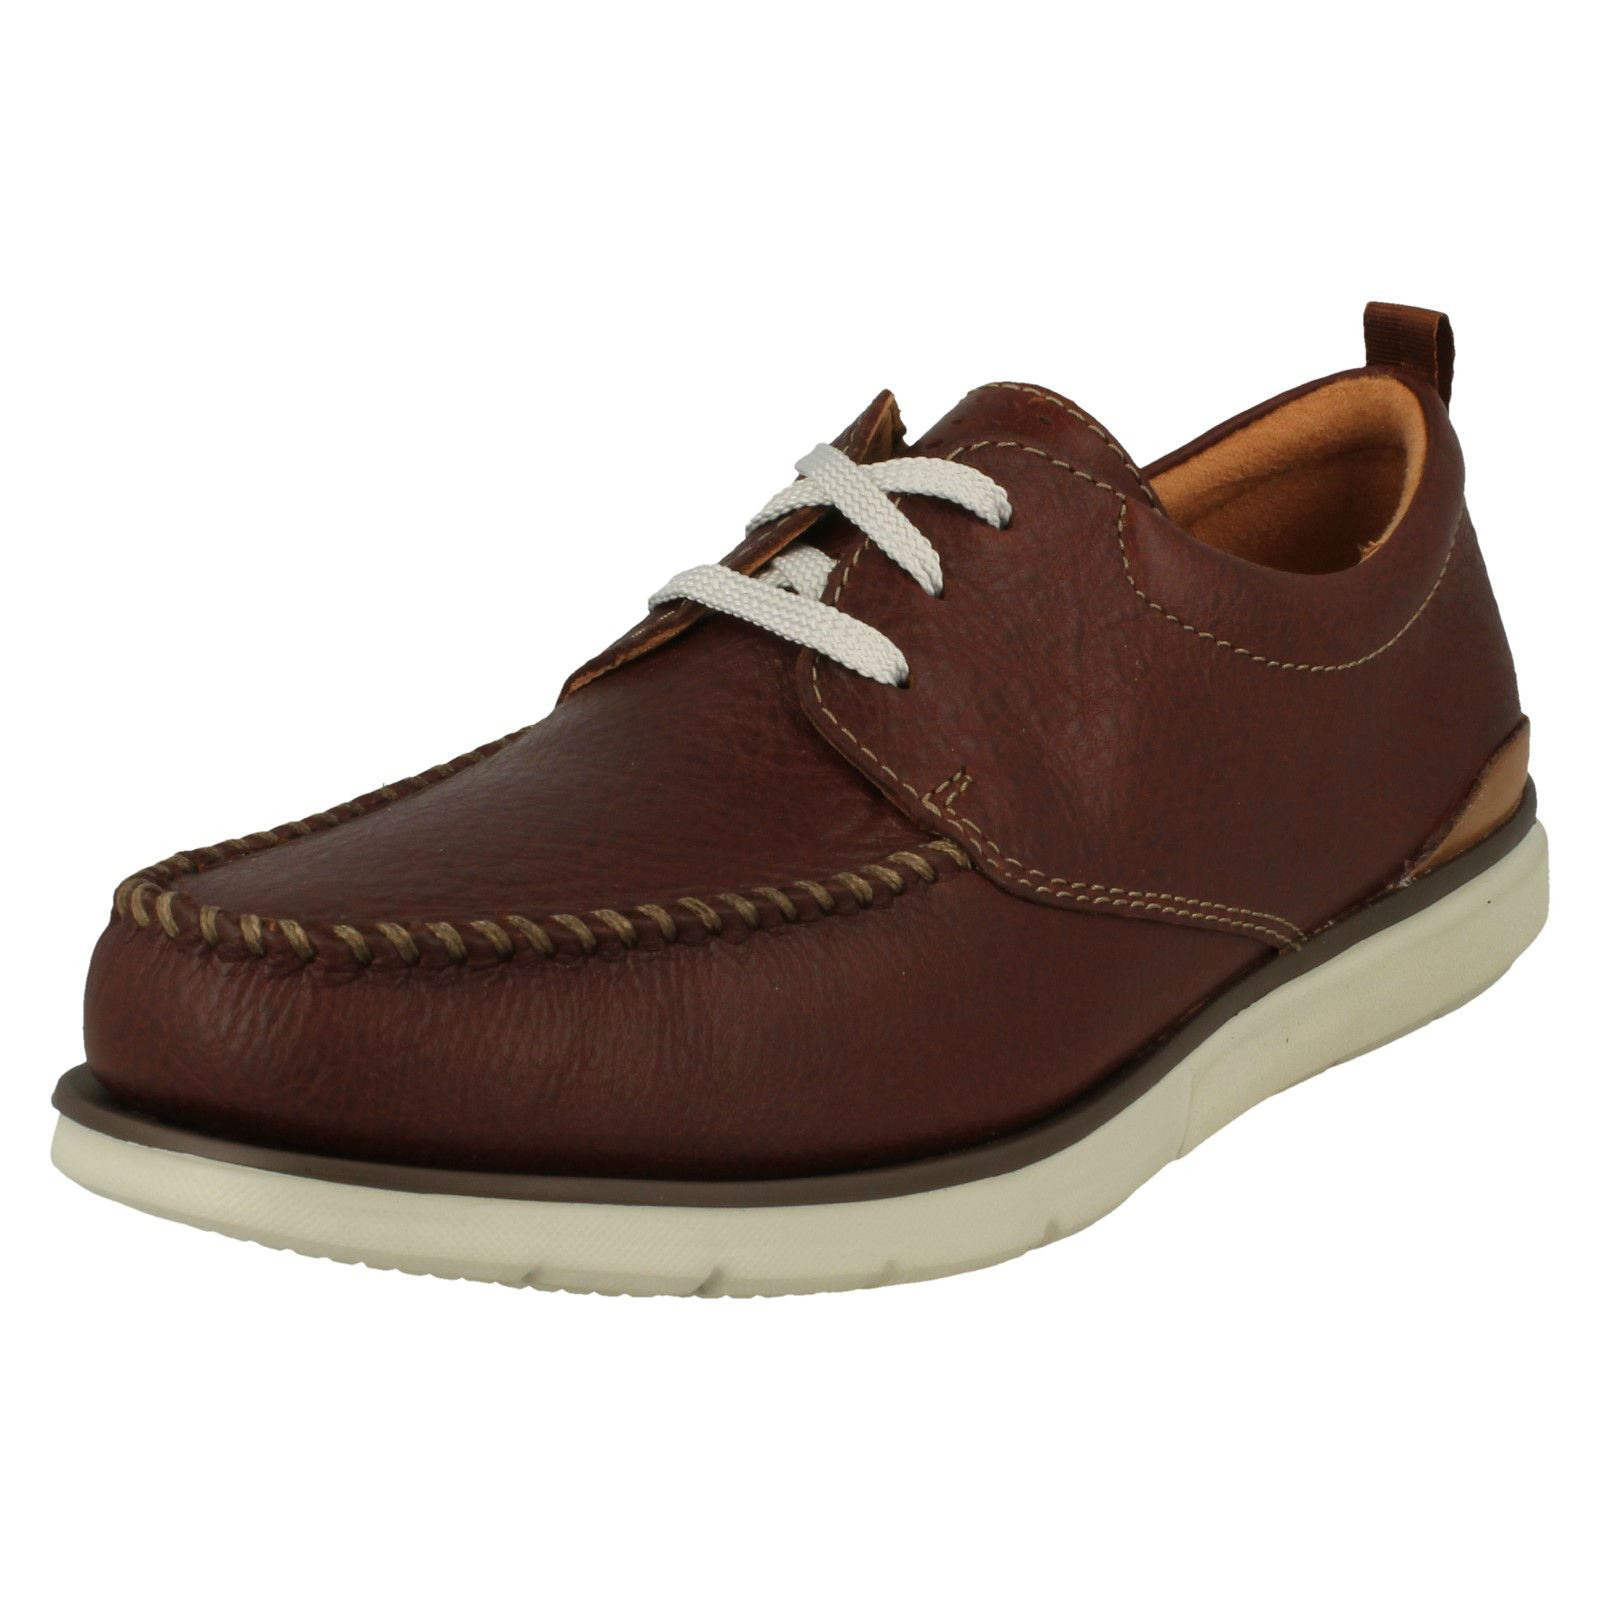 Mens Clarks Casual Lace Up Shoes Edgewood Mix